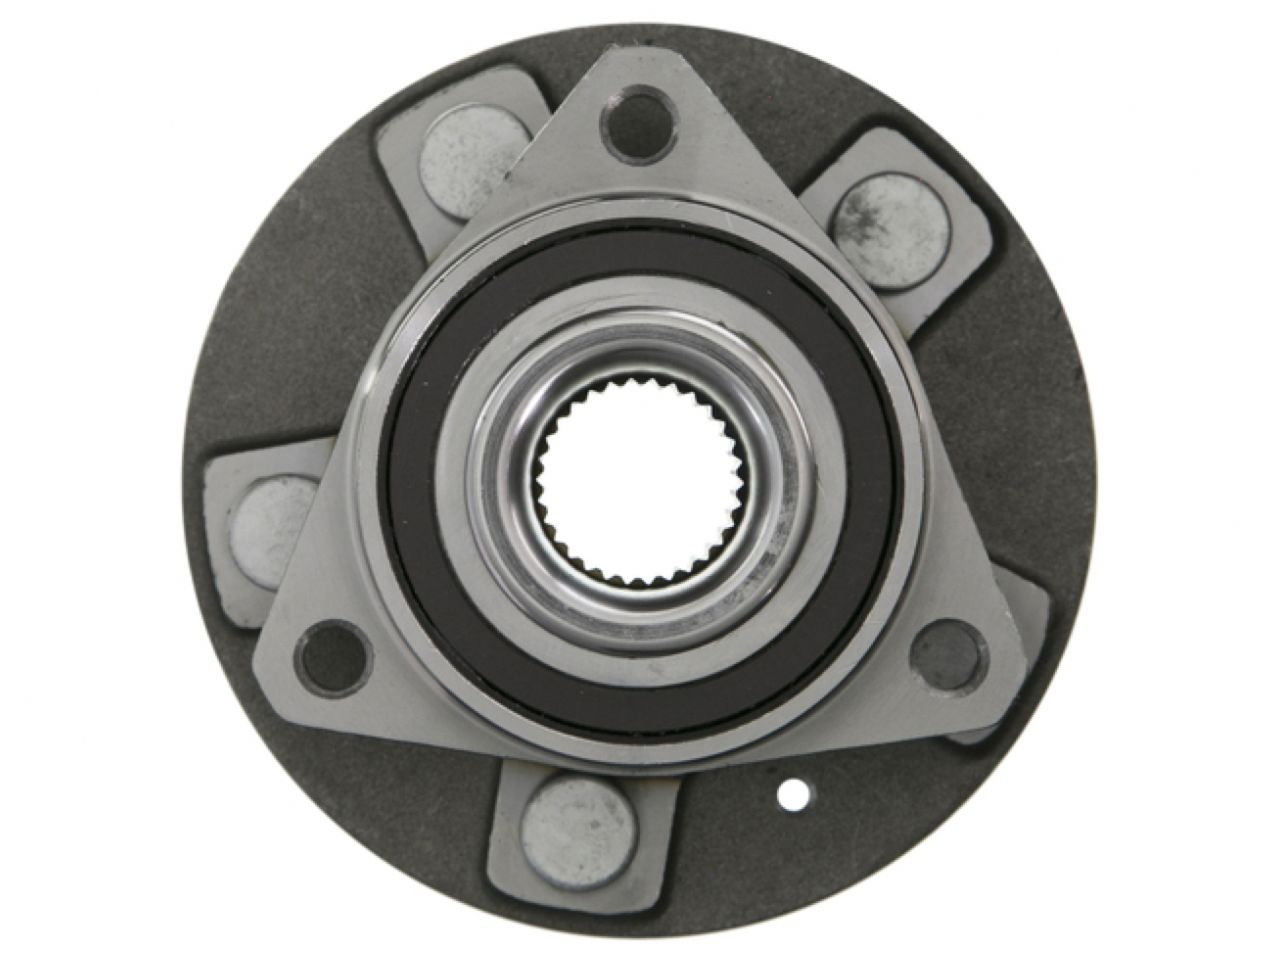 Wheel Hubs and Bearings